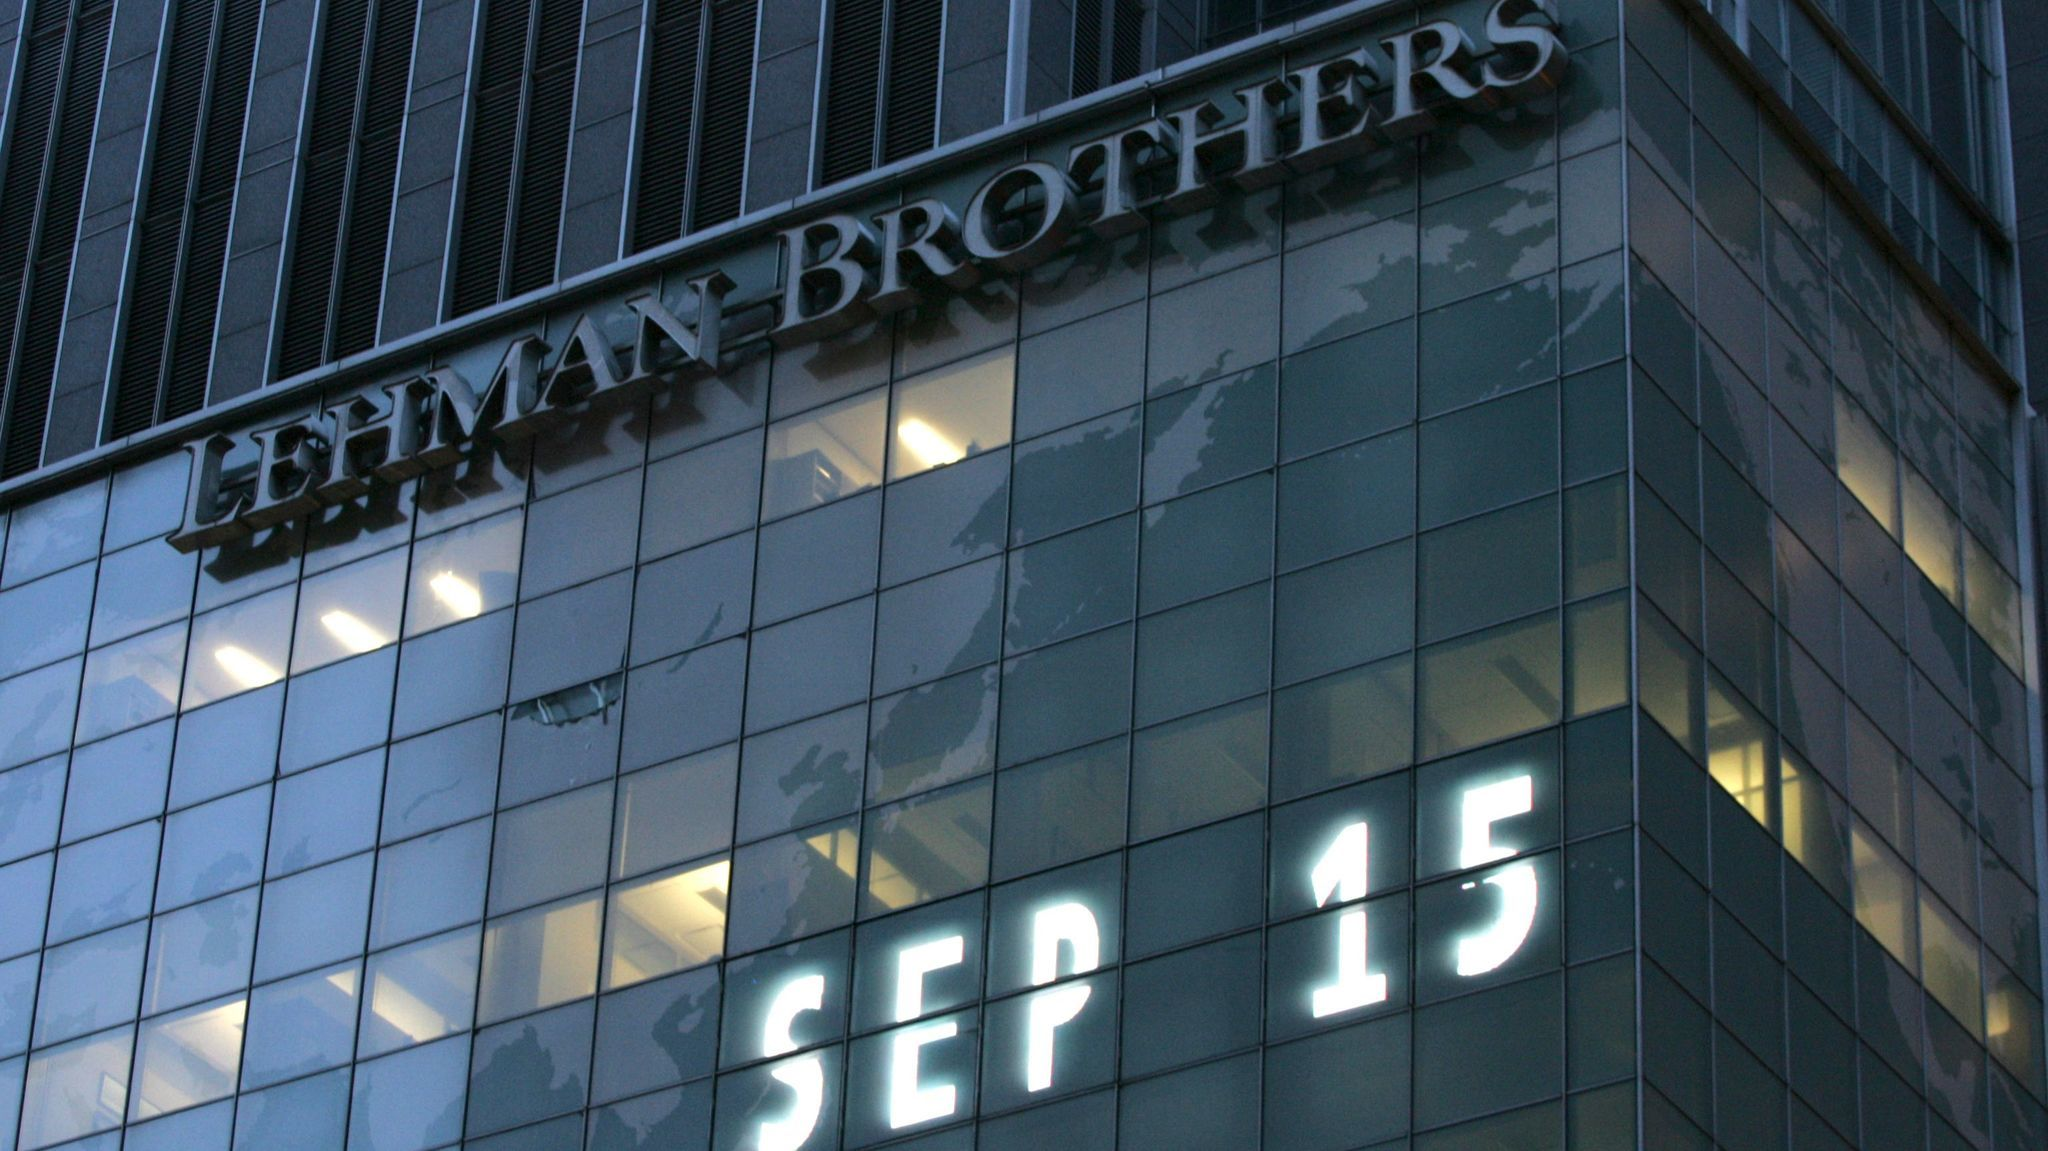 Lehman Bros.' world headquarters in New York in 2008.